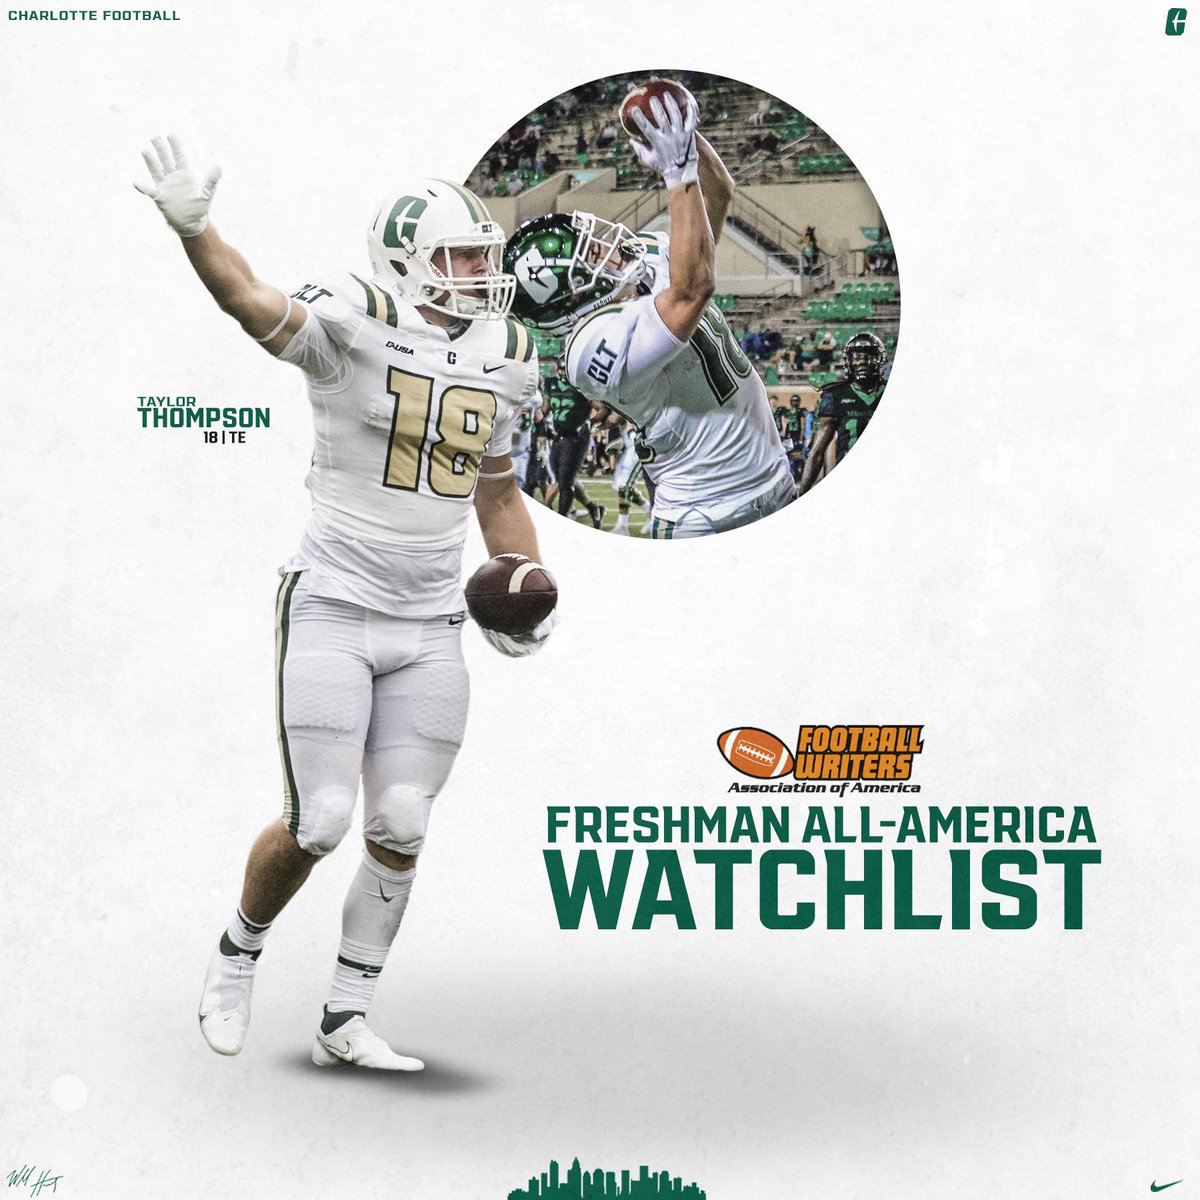 Young fella. Turning some heads early 🤙 #PEEP • #GOLDstandard